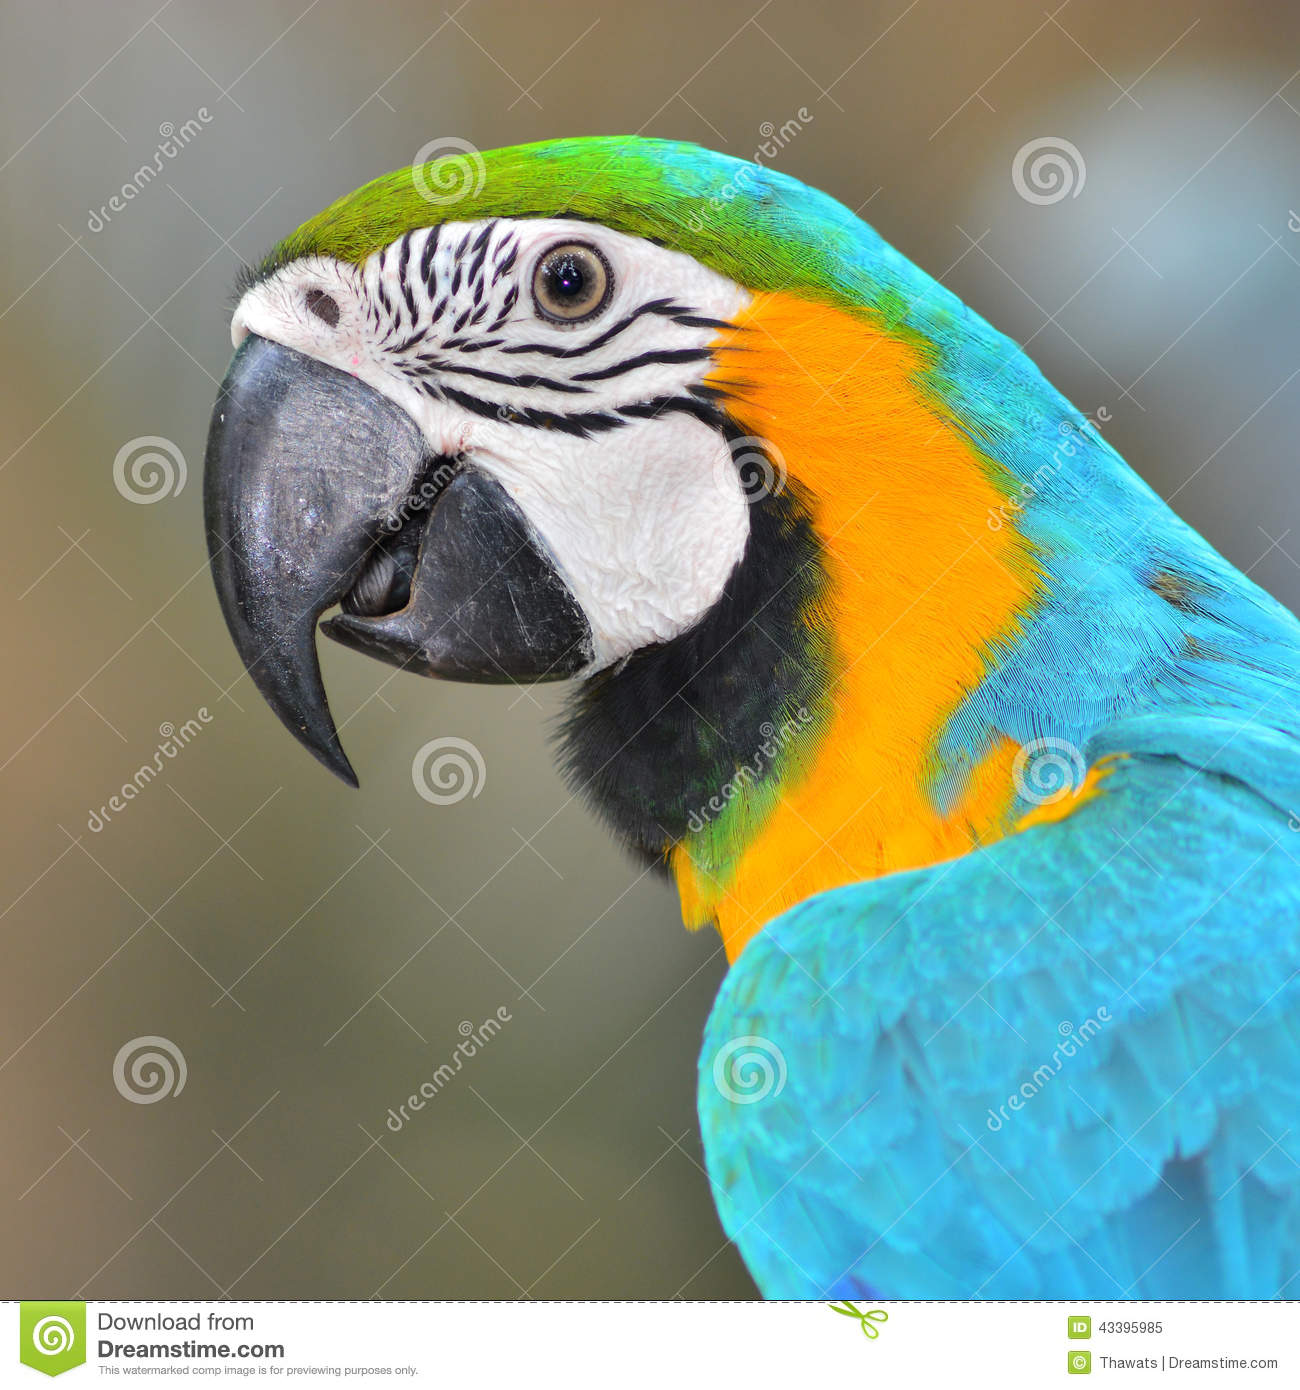 Macaw parrot stock image  Image of mate, blue, jungle - 43395985